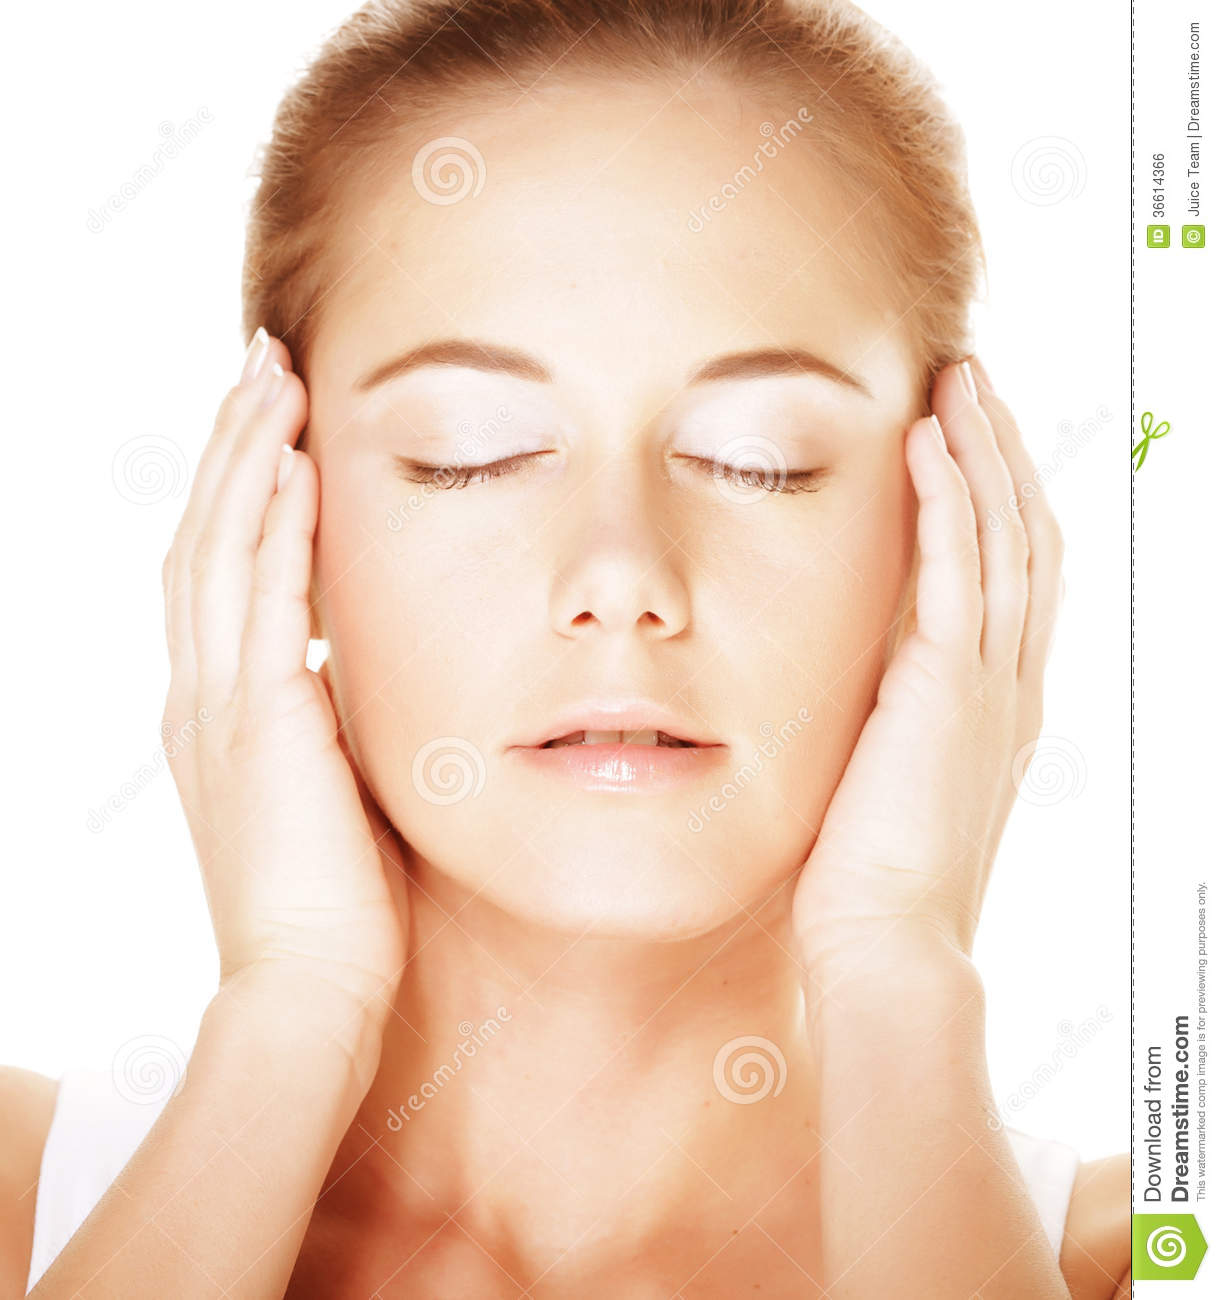 Young Closing Eyes Woman's Face Stock Photo